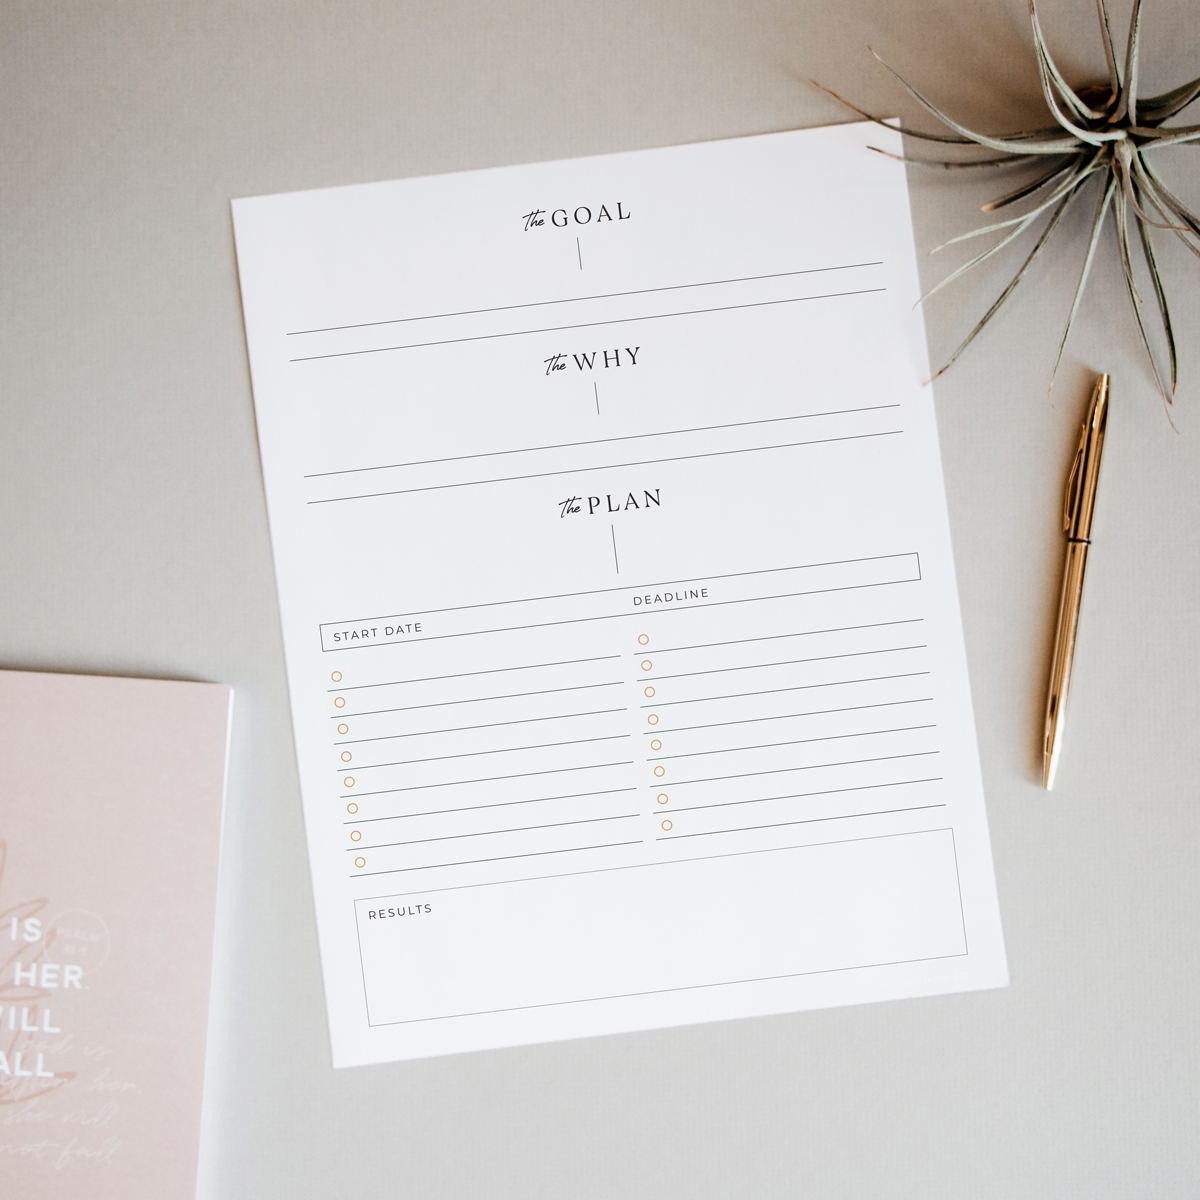 Free Printable Goal Planning Worksheet How To Write